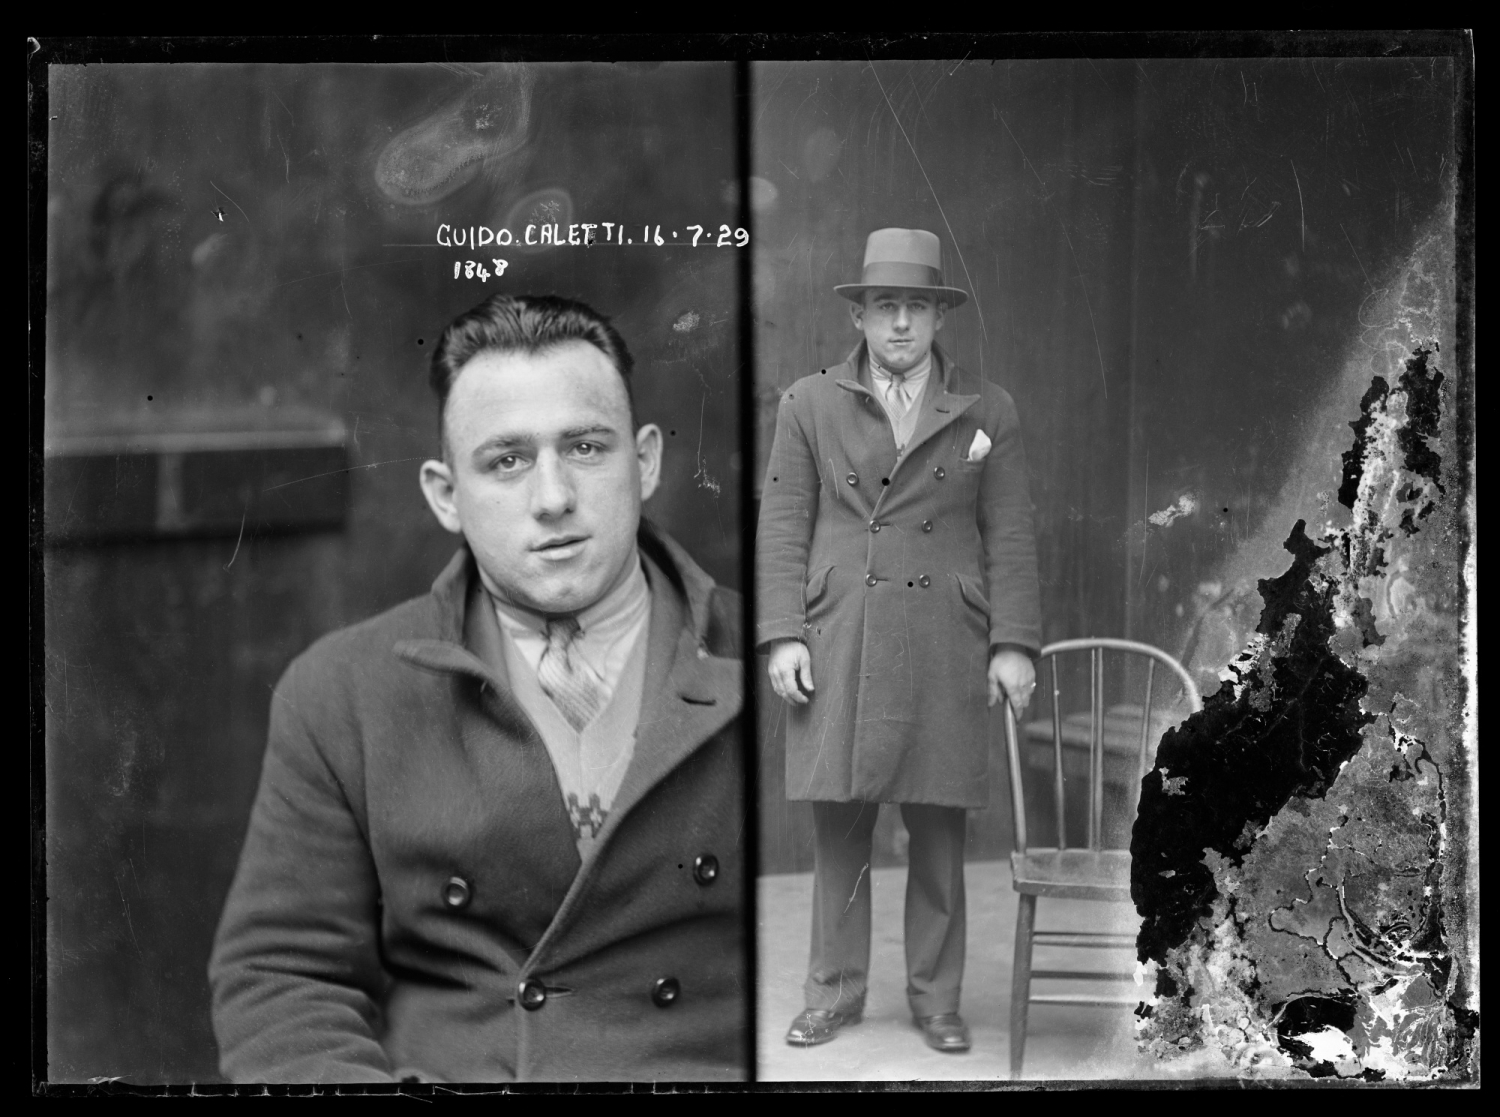 Guido Calletti, Special Photograph number 1848, 16 July 1929, Central Police Station, Sydney.